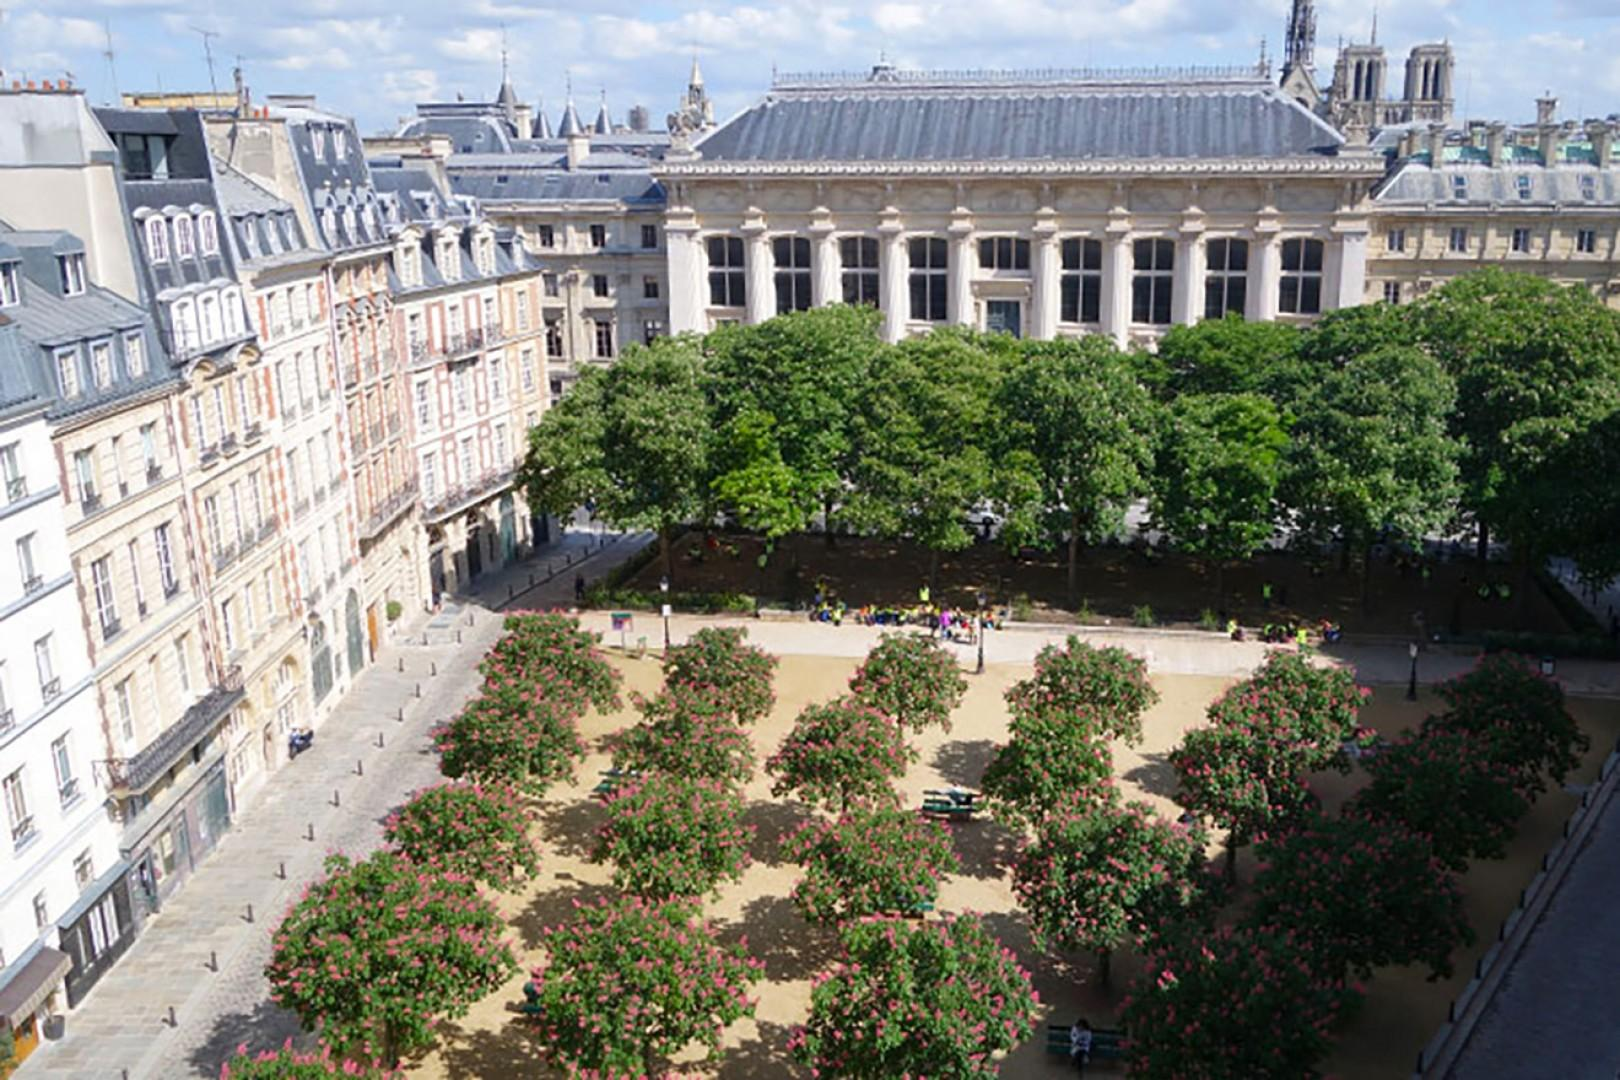 Incredible view overlooking beautiful Place Dauphine!